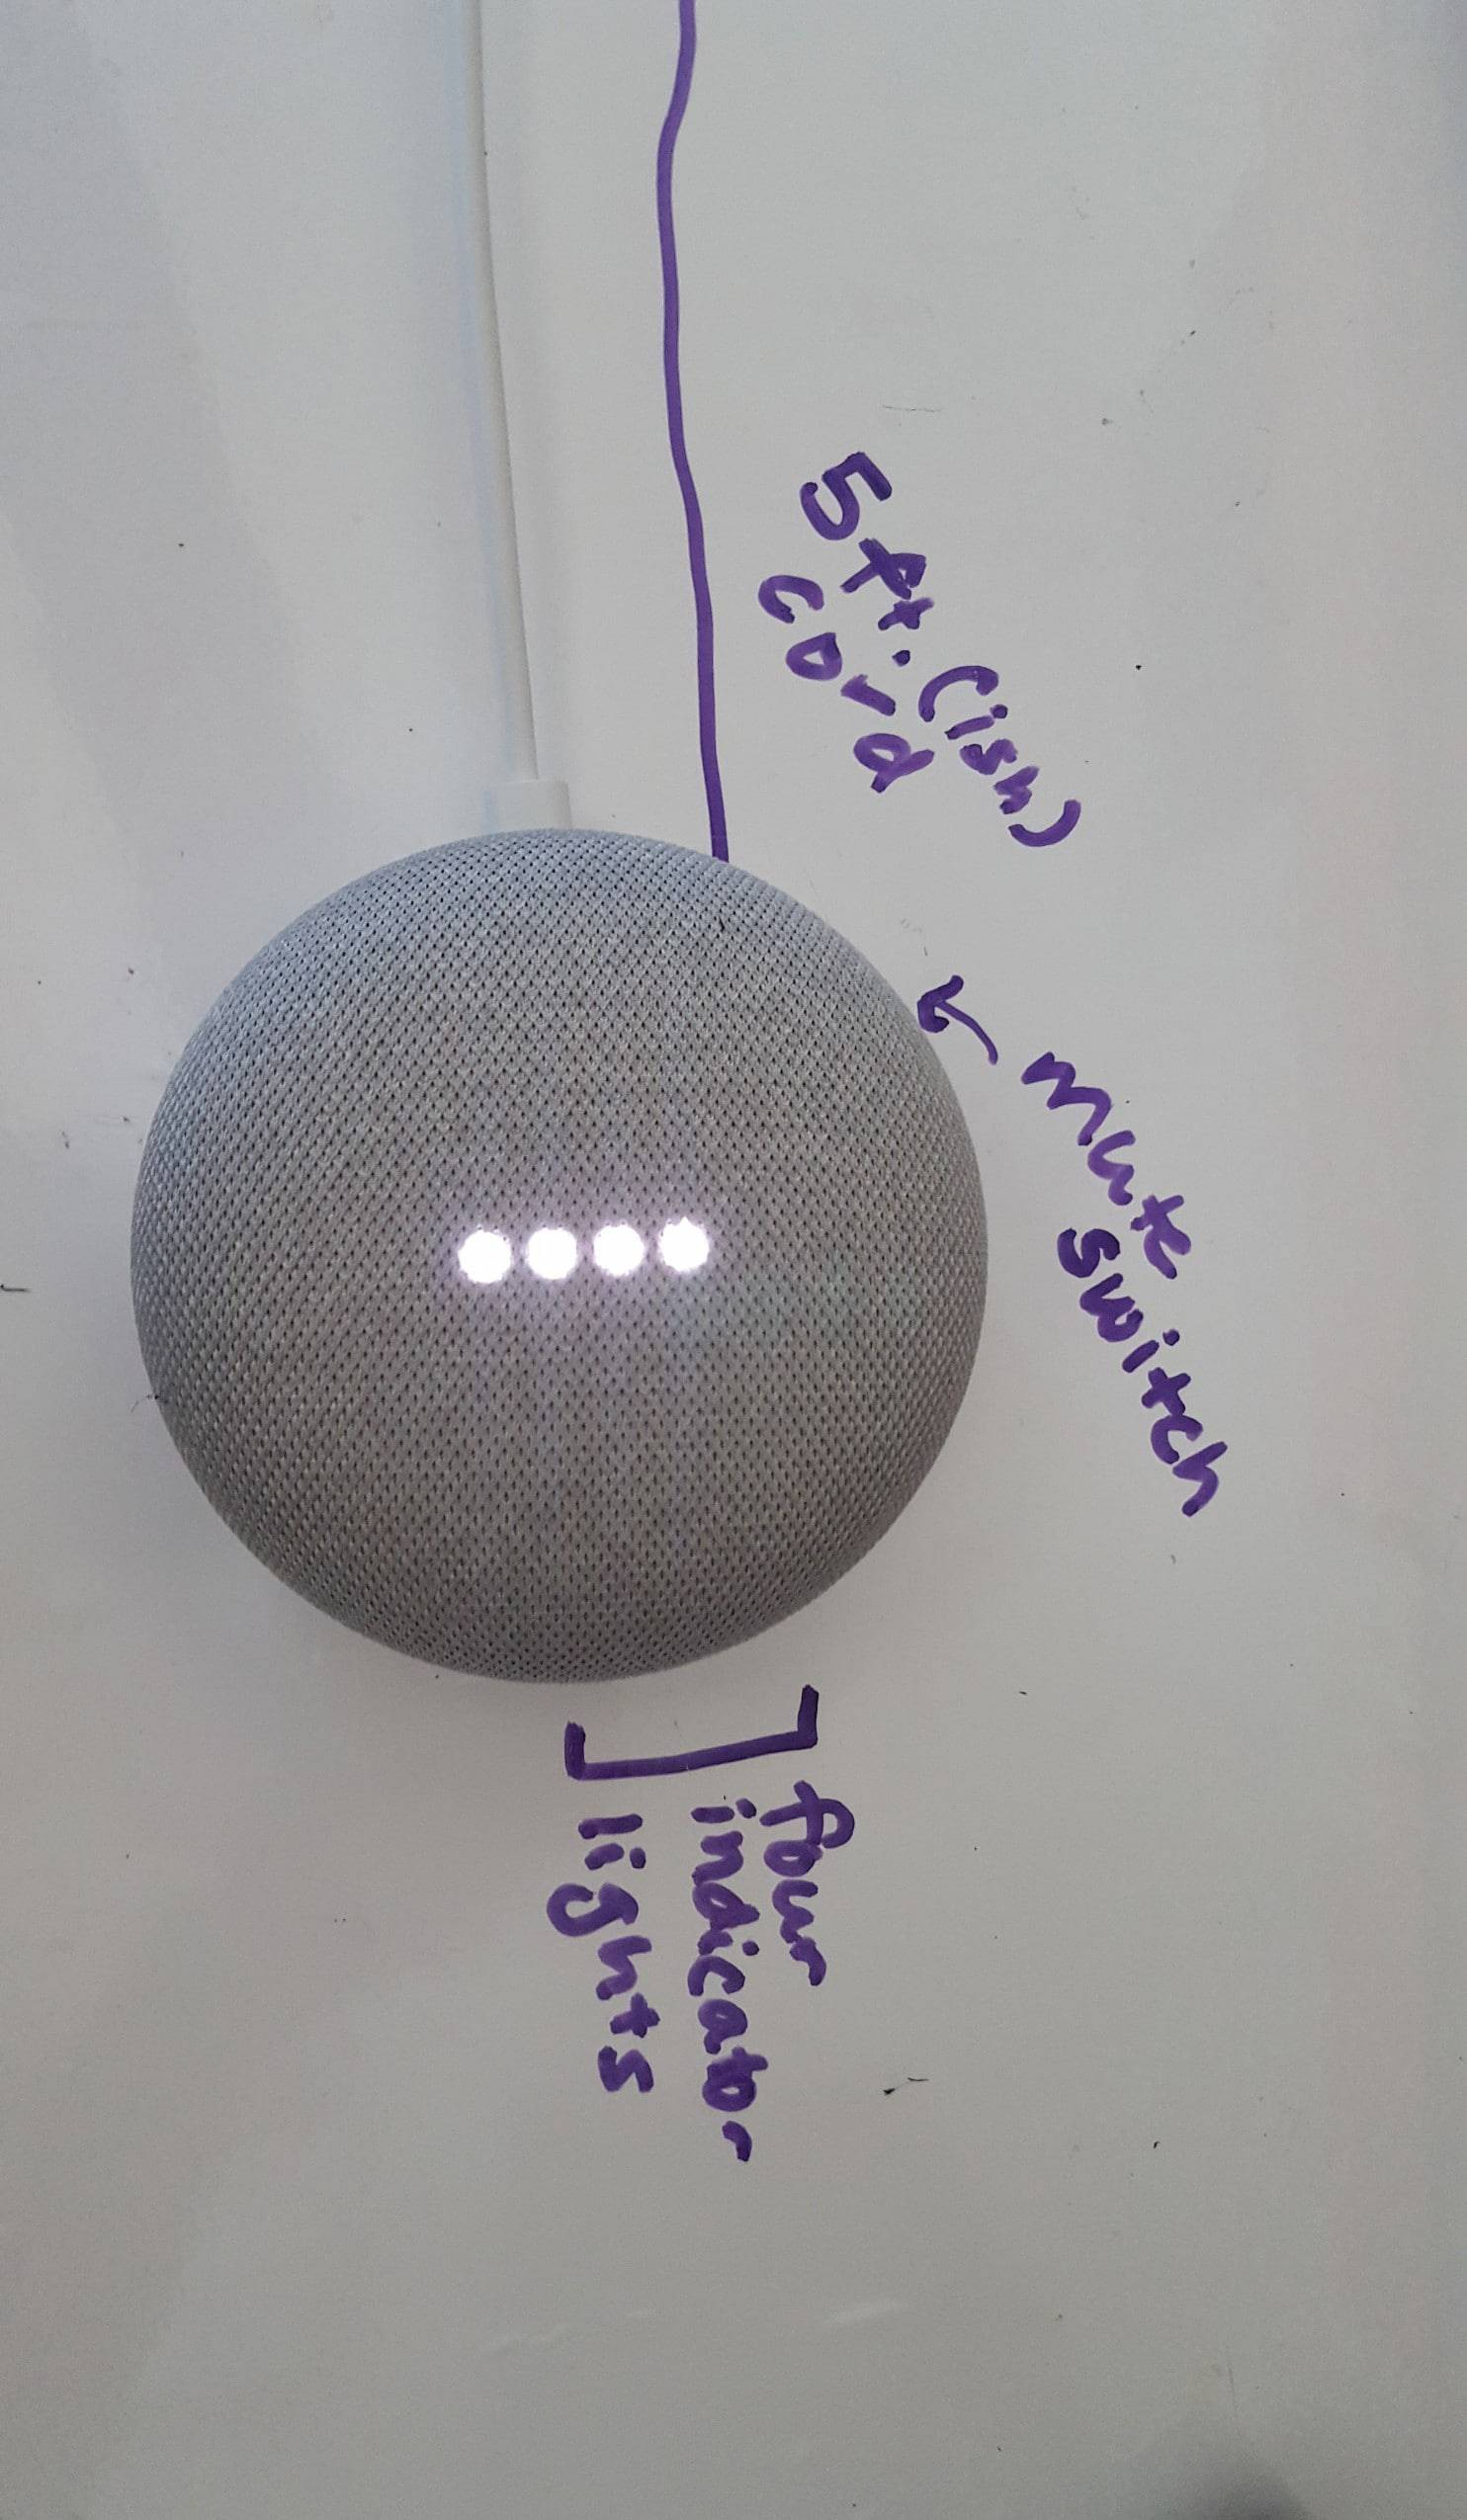 review google home mini offers cheapest way to get into